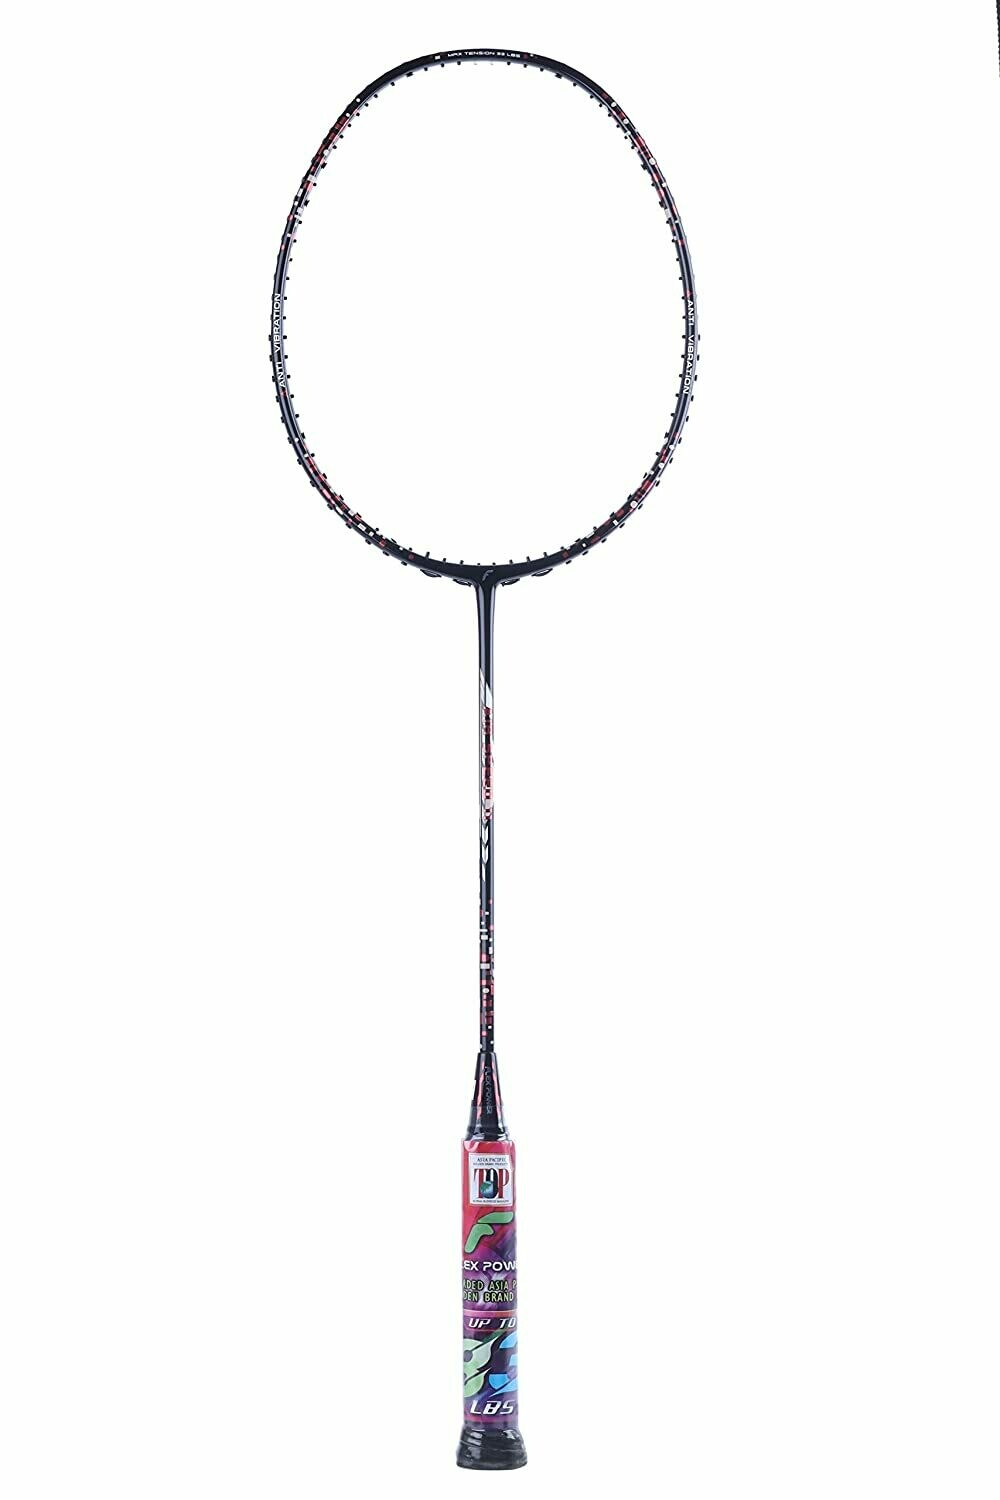 Flex Power Air Speed 11 (Mega Tension - 33LBS)Full Graphite Badminton Racquet with Full Racket Cover Black/Red